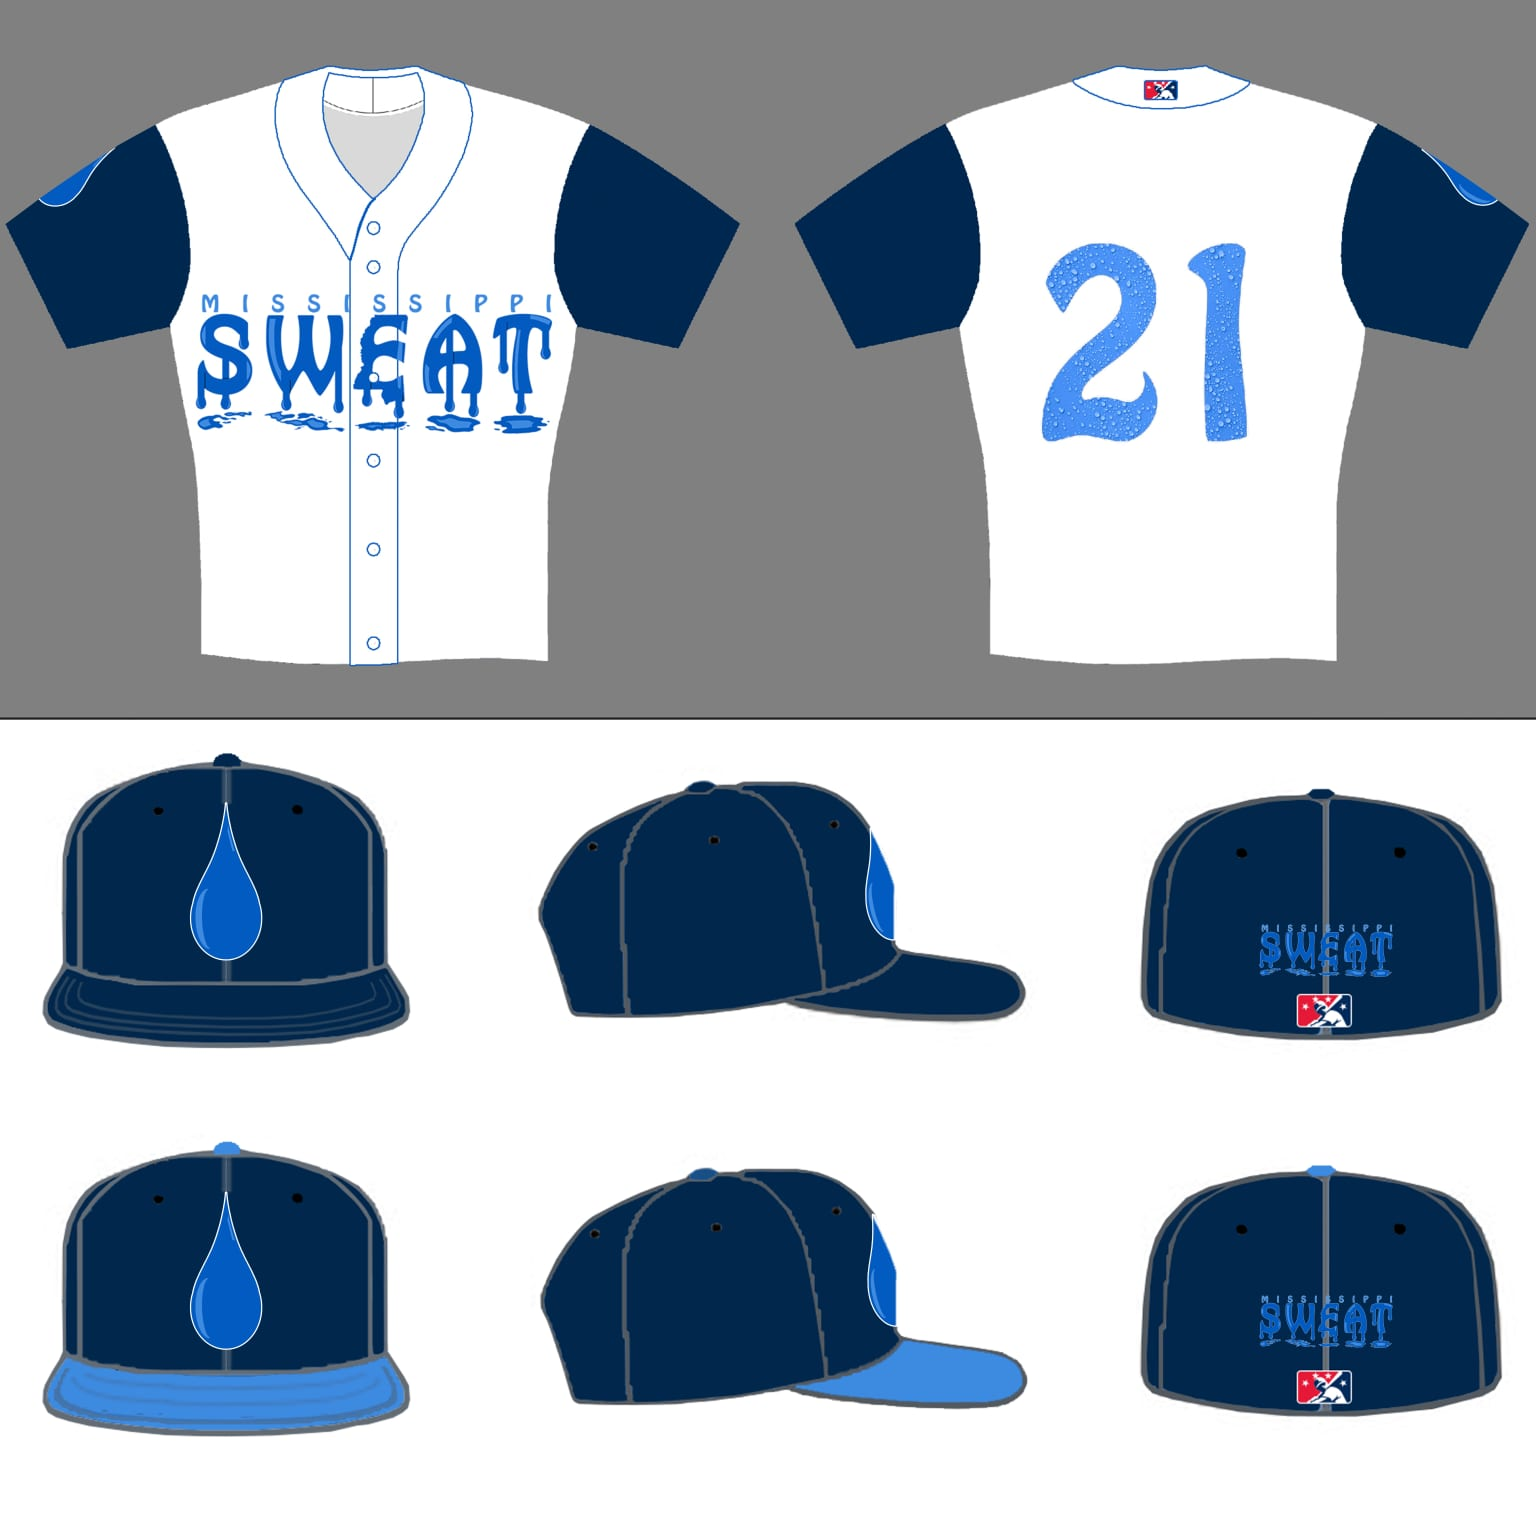 Mississippi Sweat (One day team re-brand) Jersey